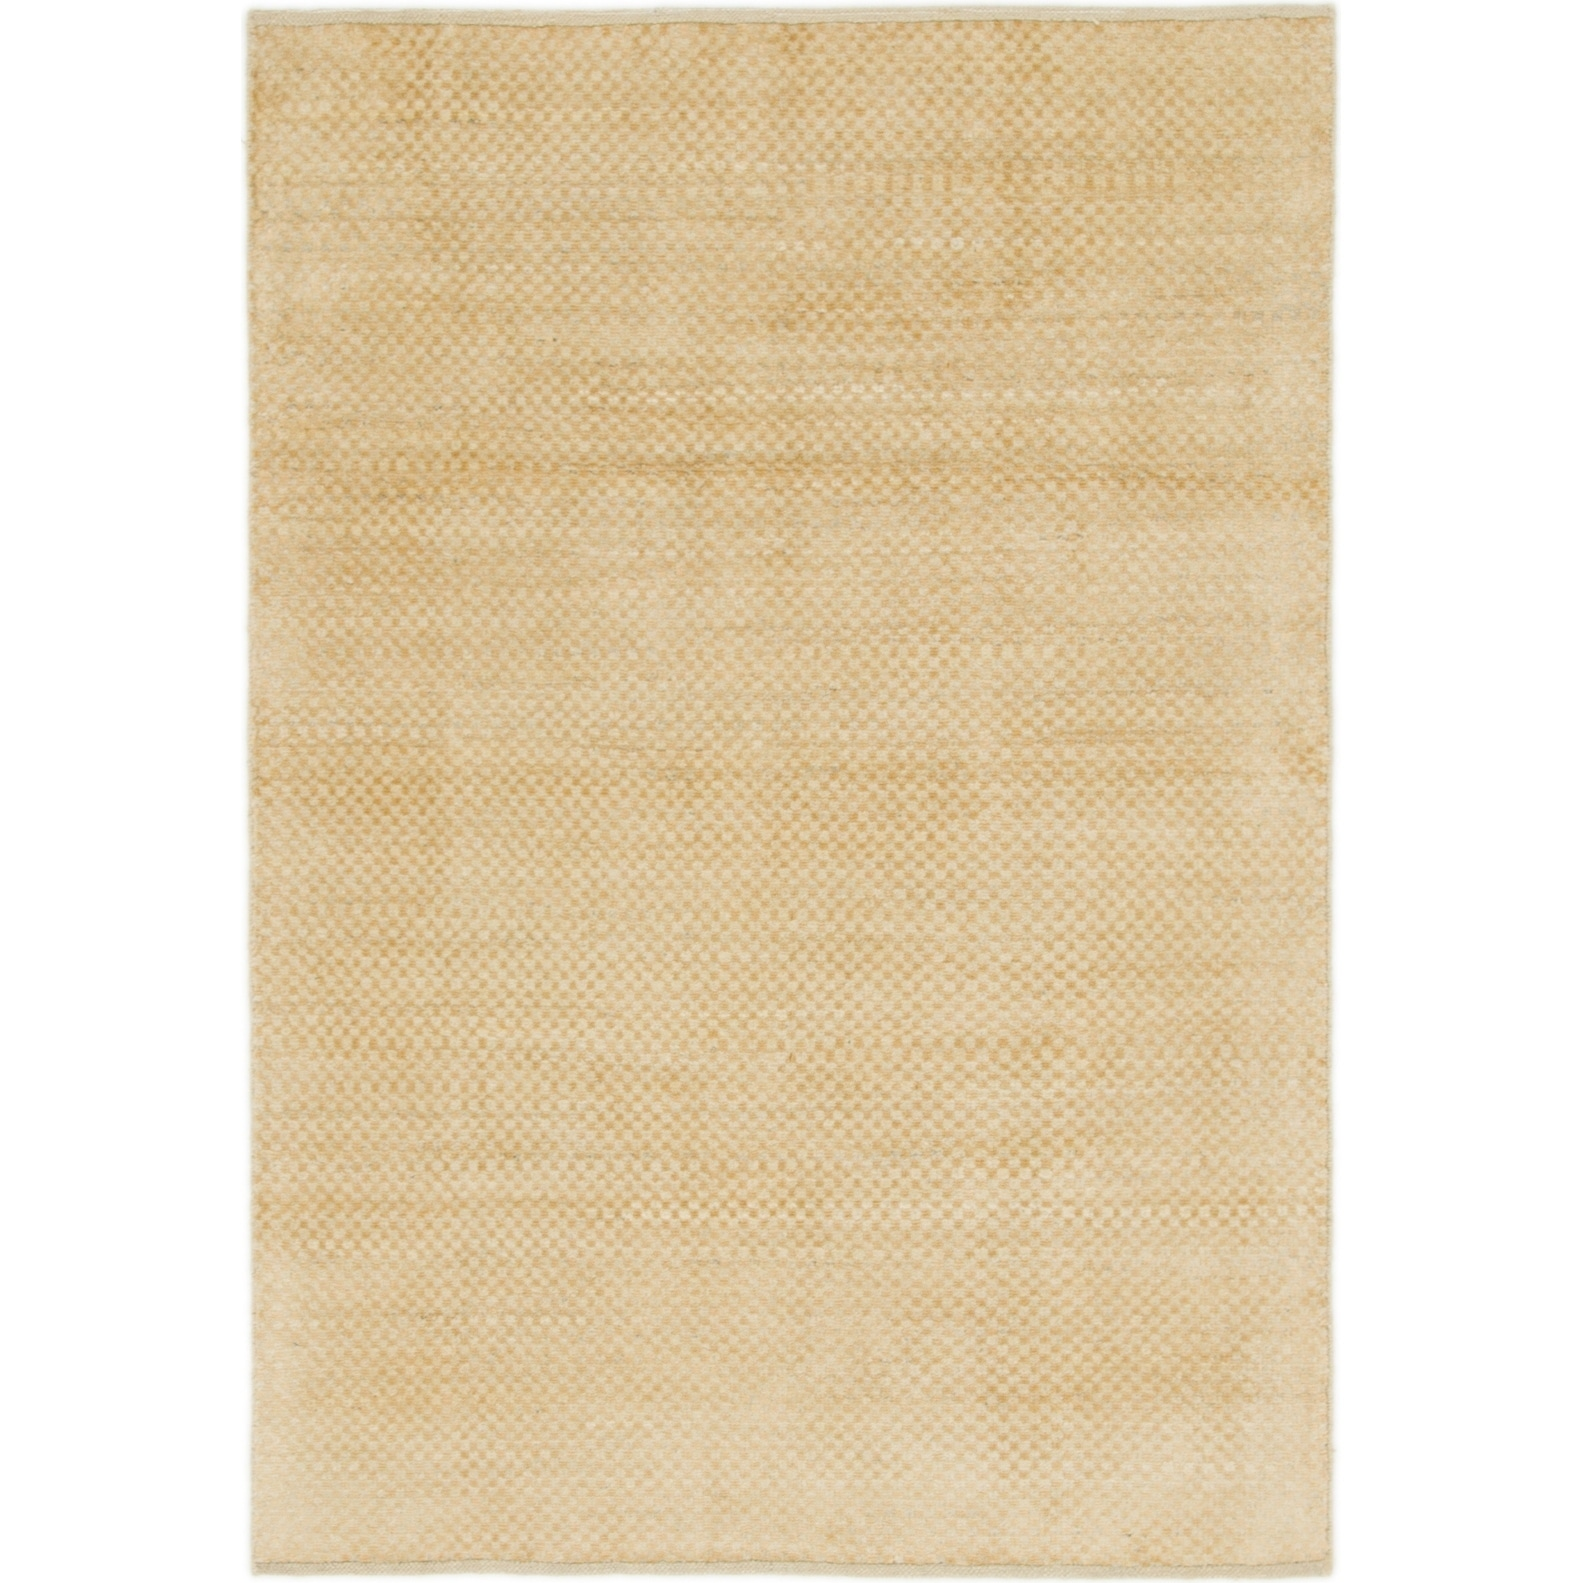 Hand Knotted Kashkuli Gabbeh Wool Area Rug - 4 x 5 10 (Cream - 4 x 5 10)